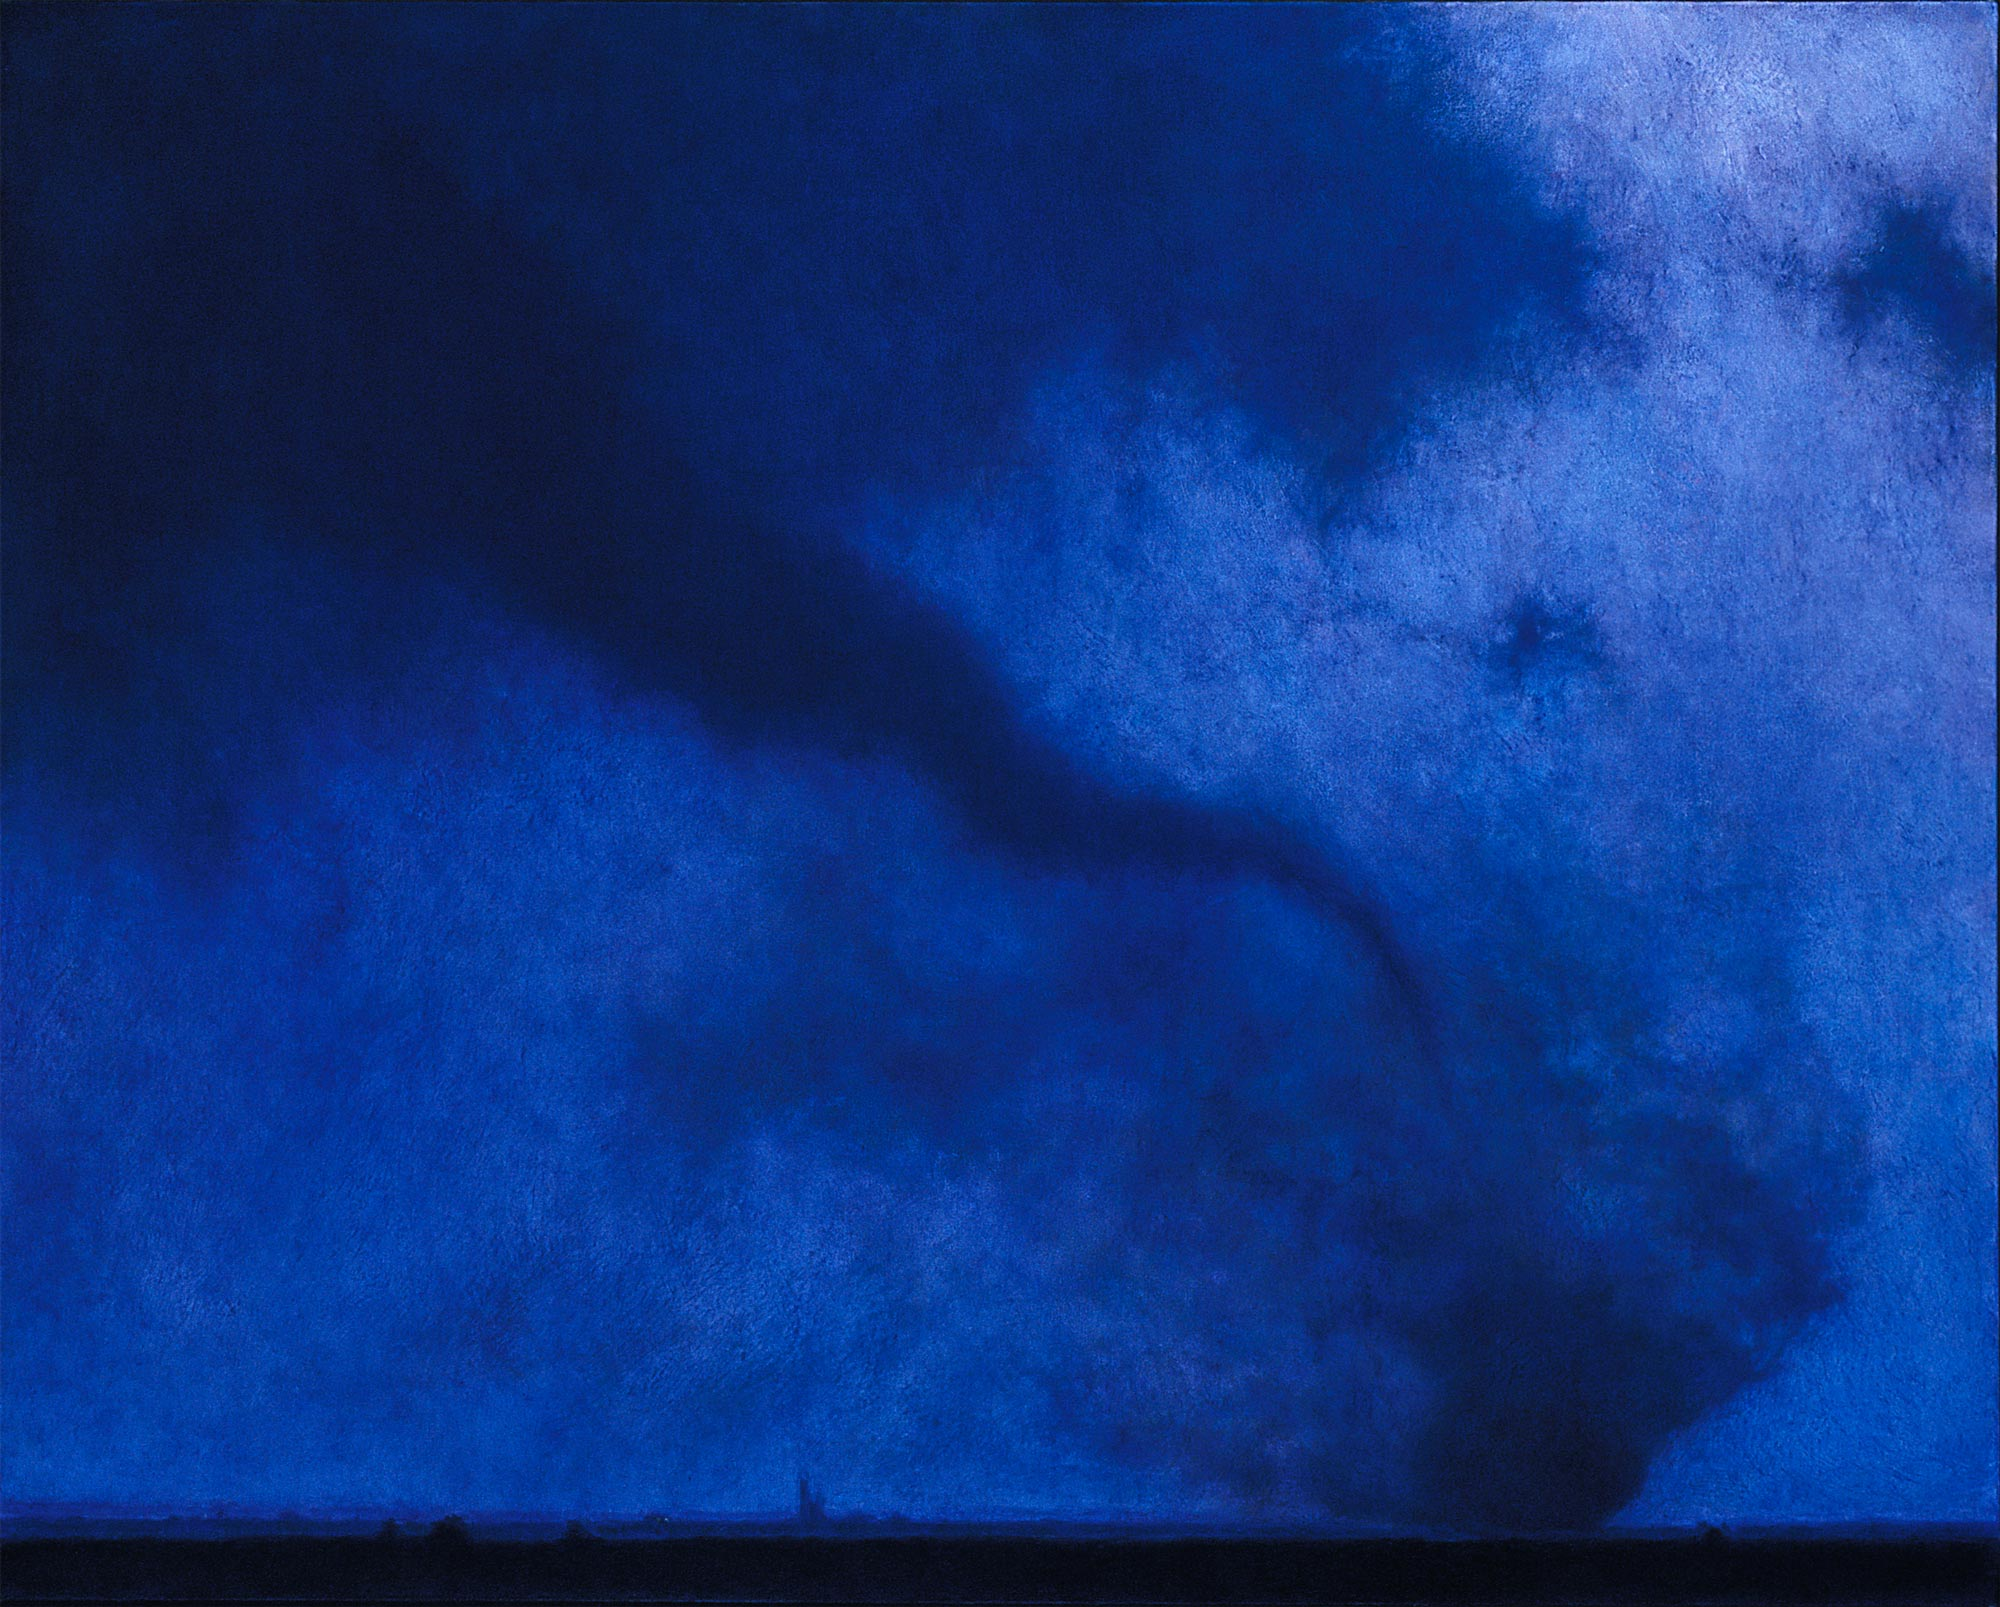 Breathing, 48 x 60, oil on canvas, 2005